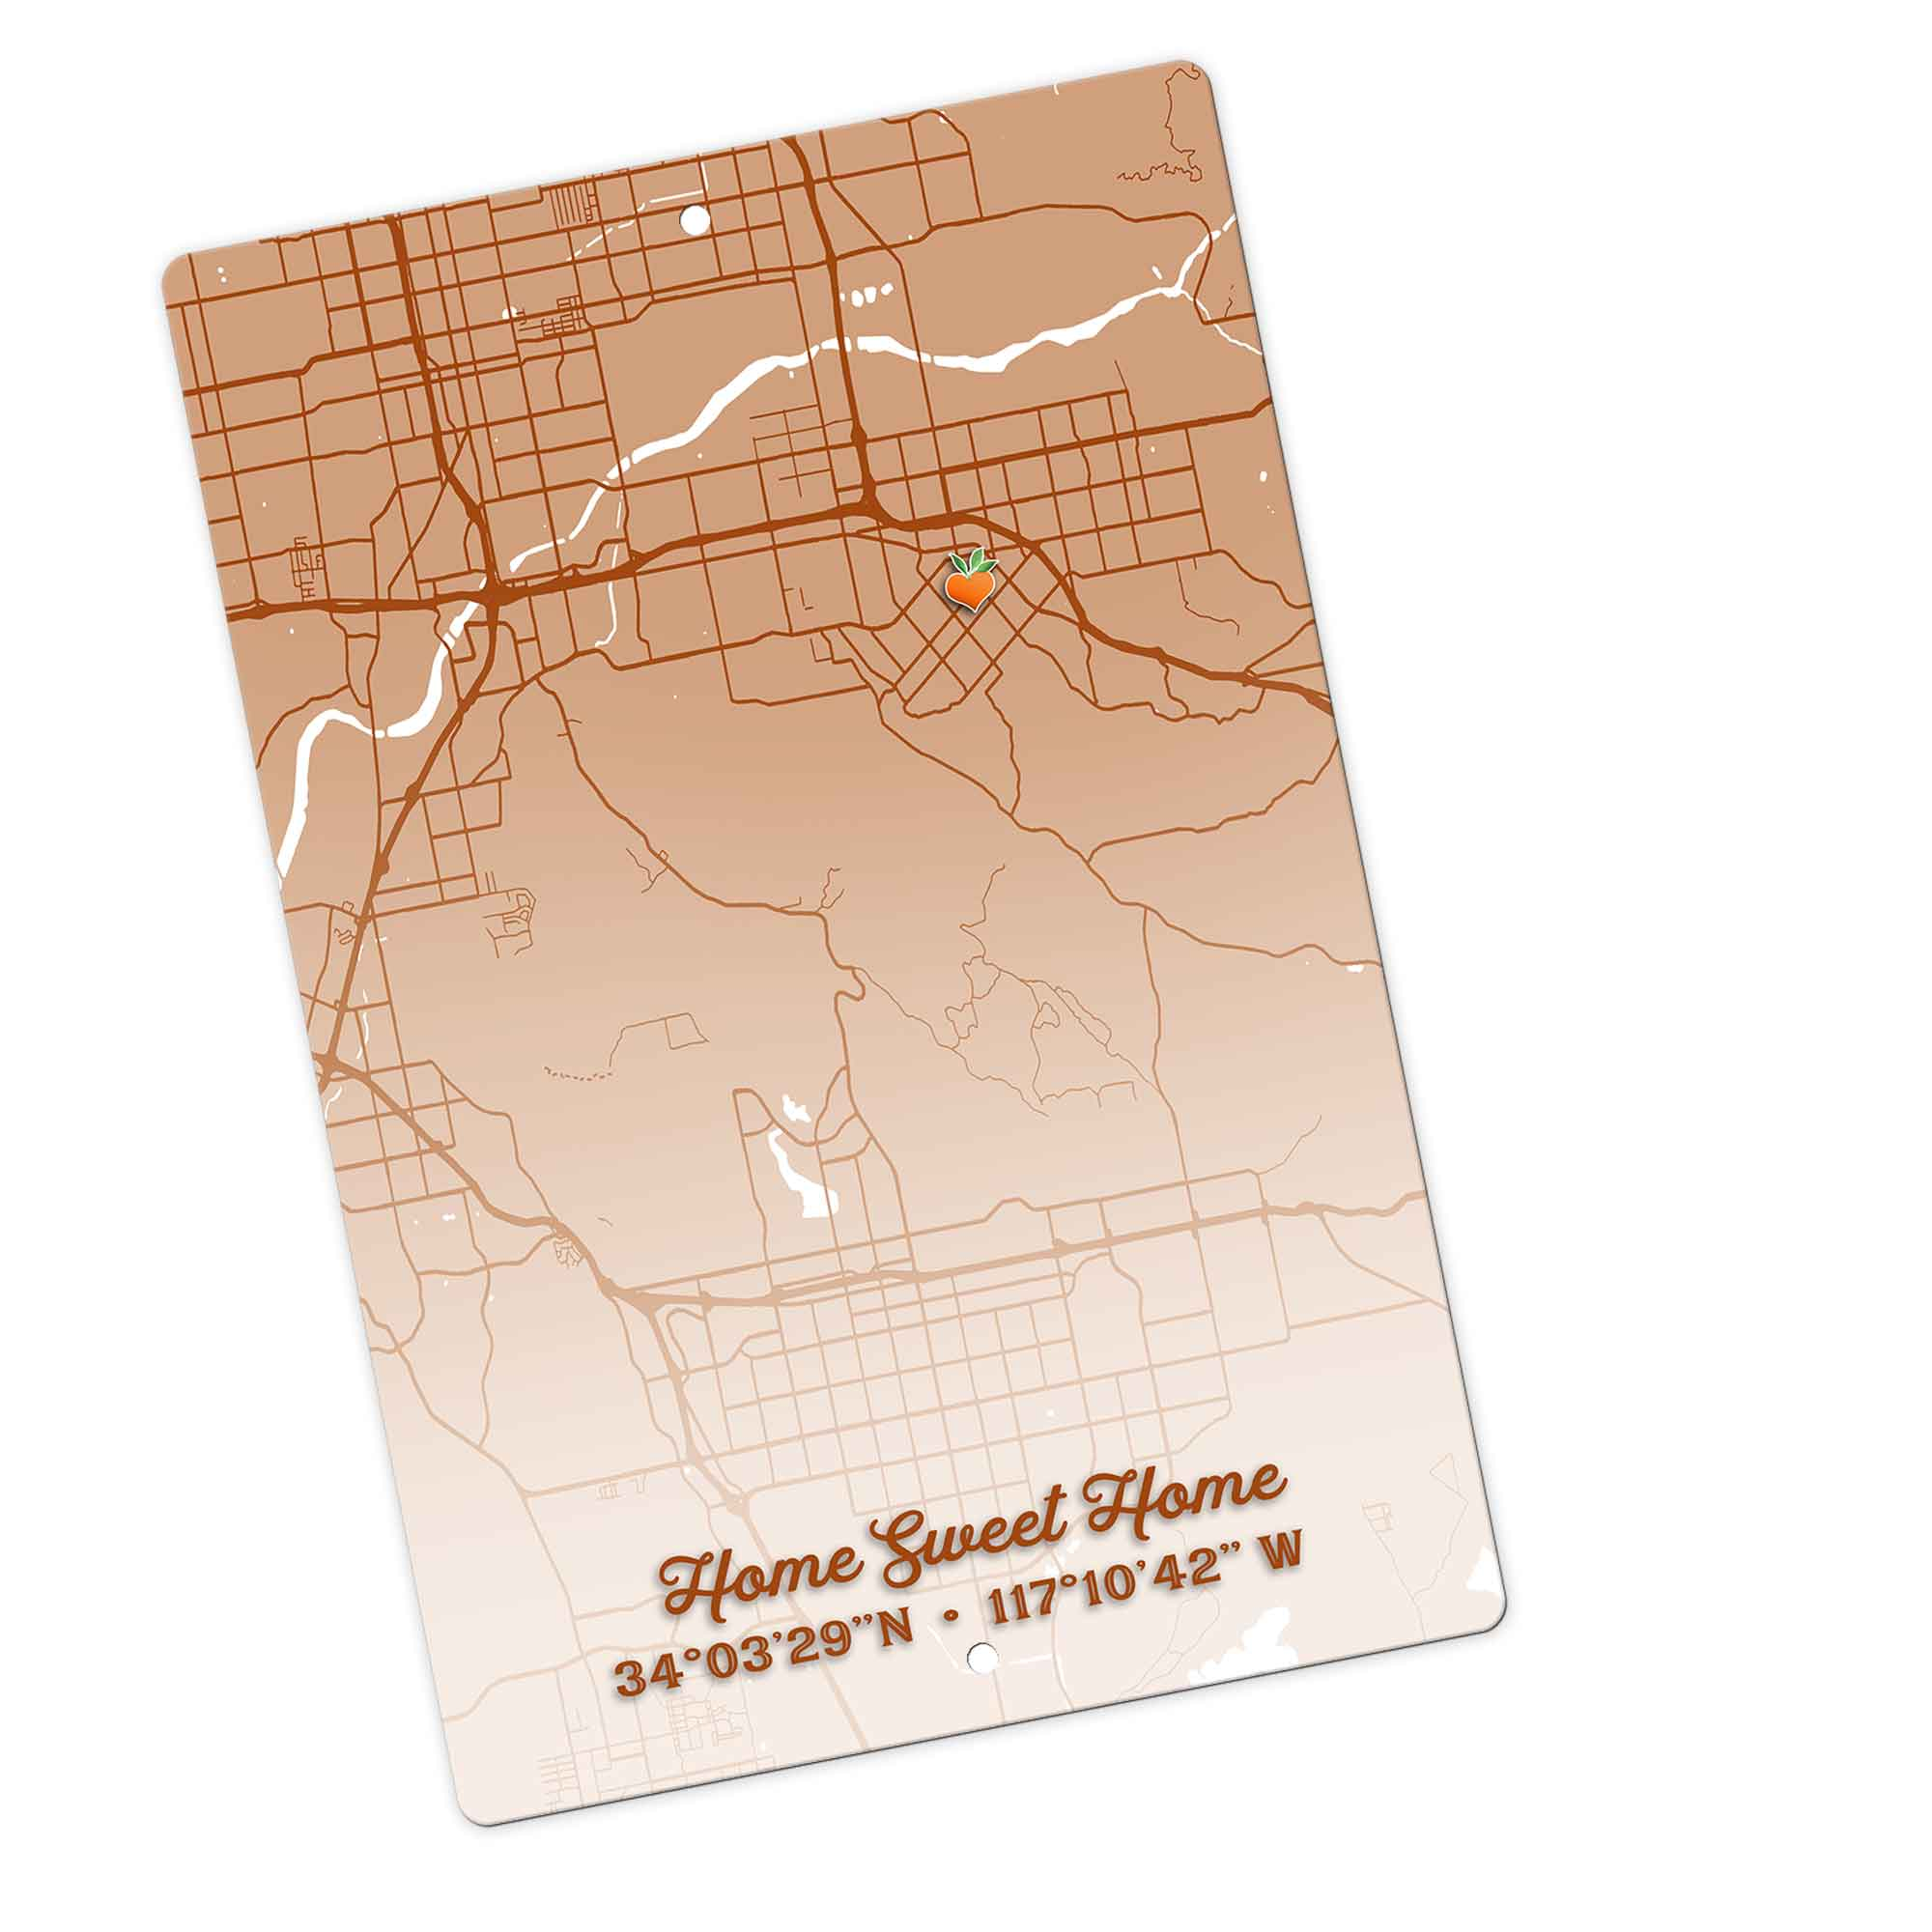 Home Sweet Home With Redlands Map Coordinates Metal Aluminum Sign | PaisleyGroveGIFTS S902g